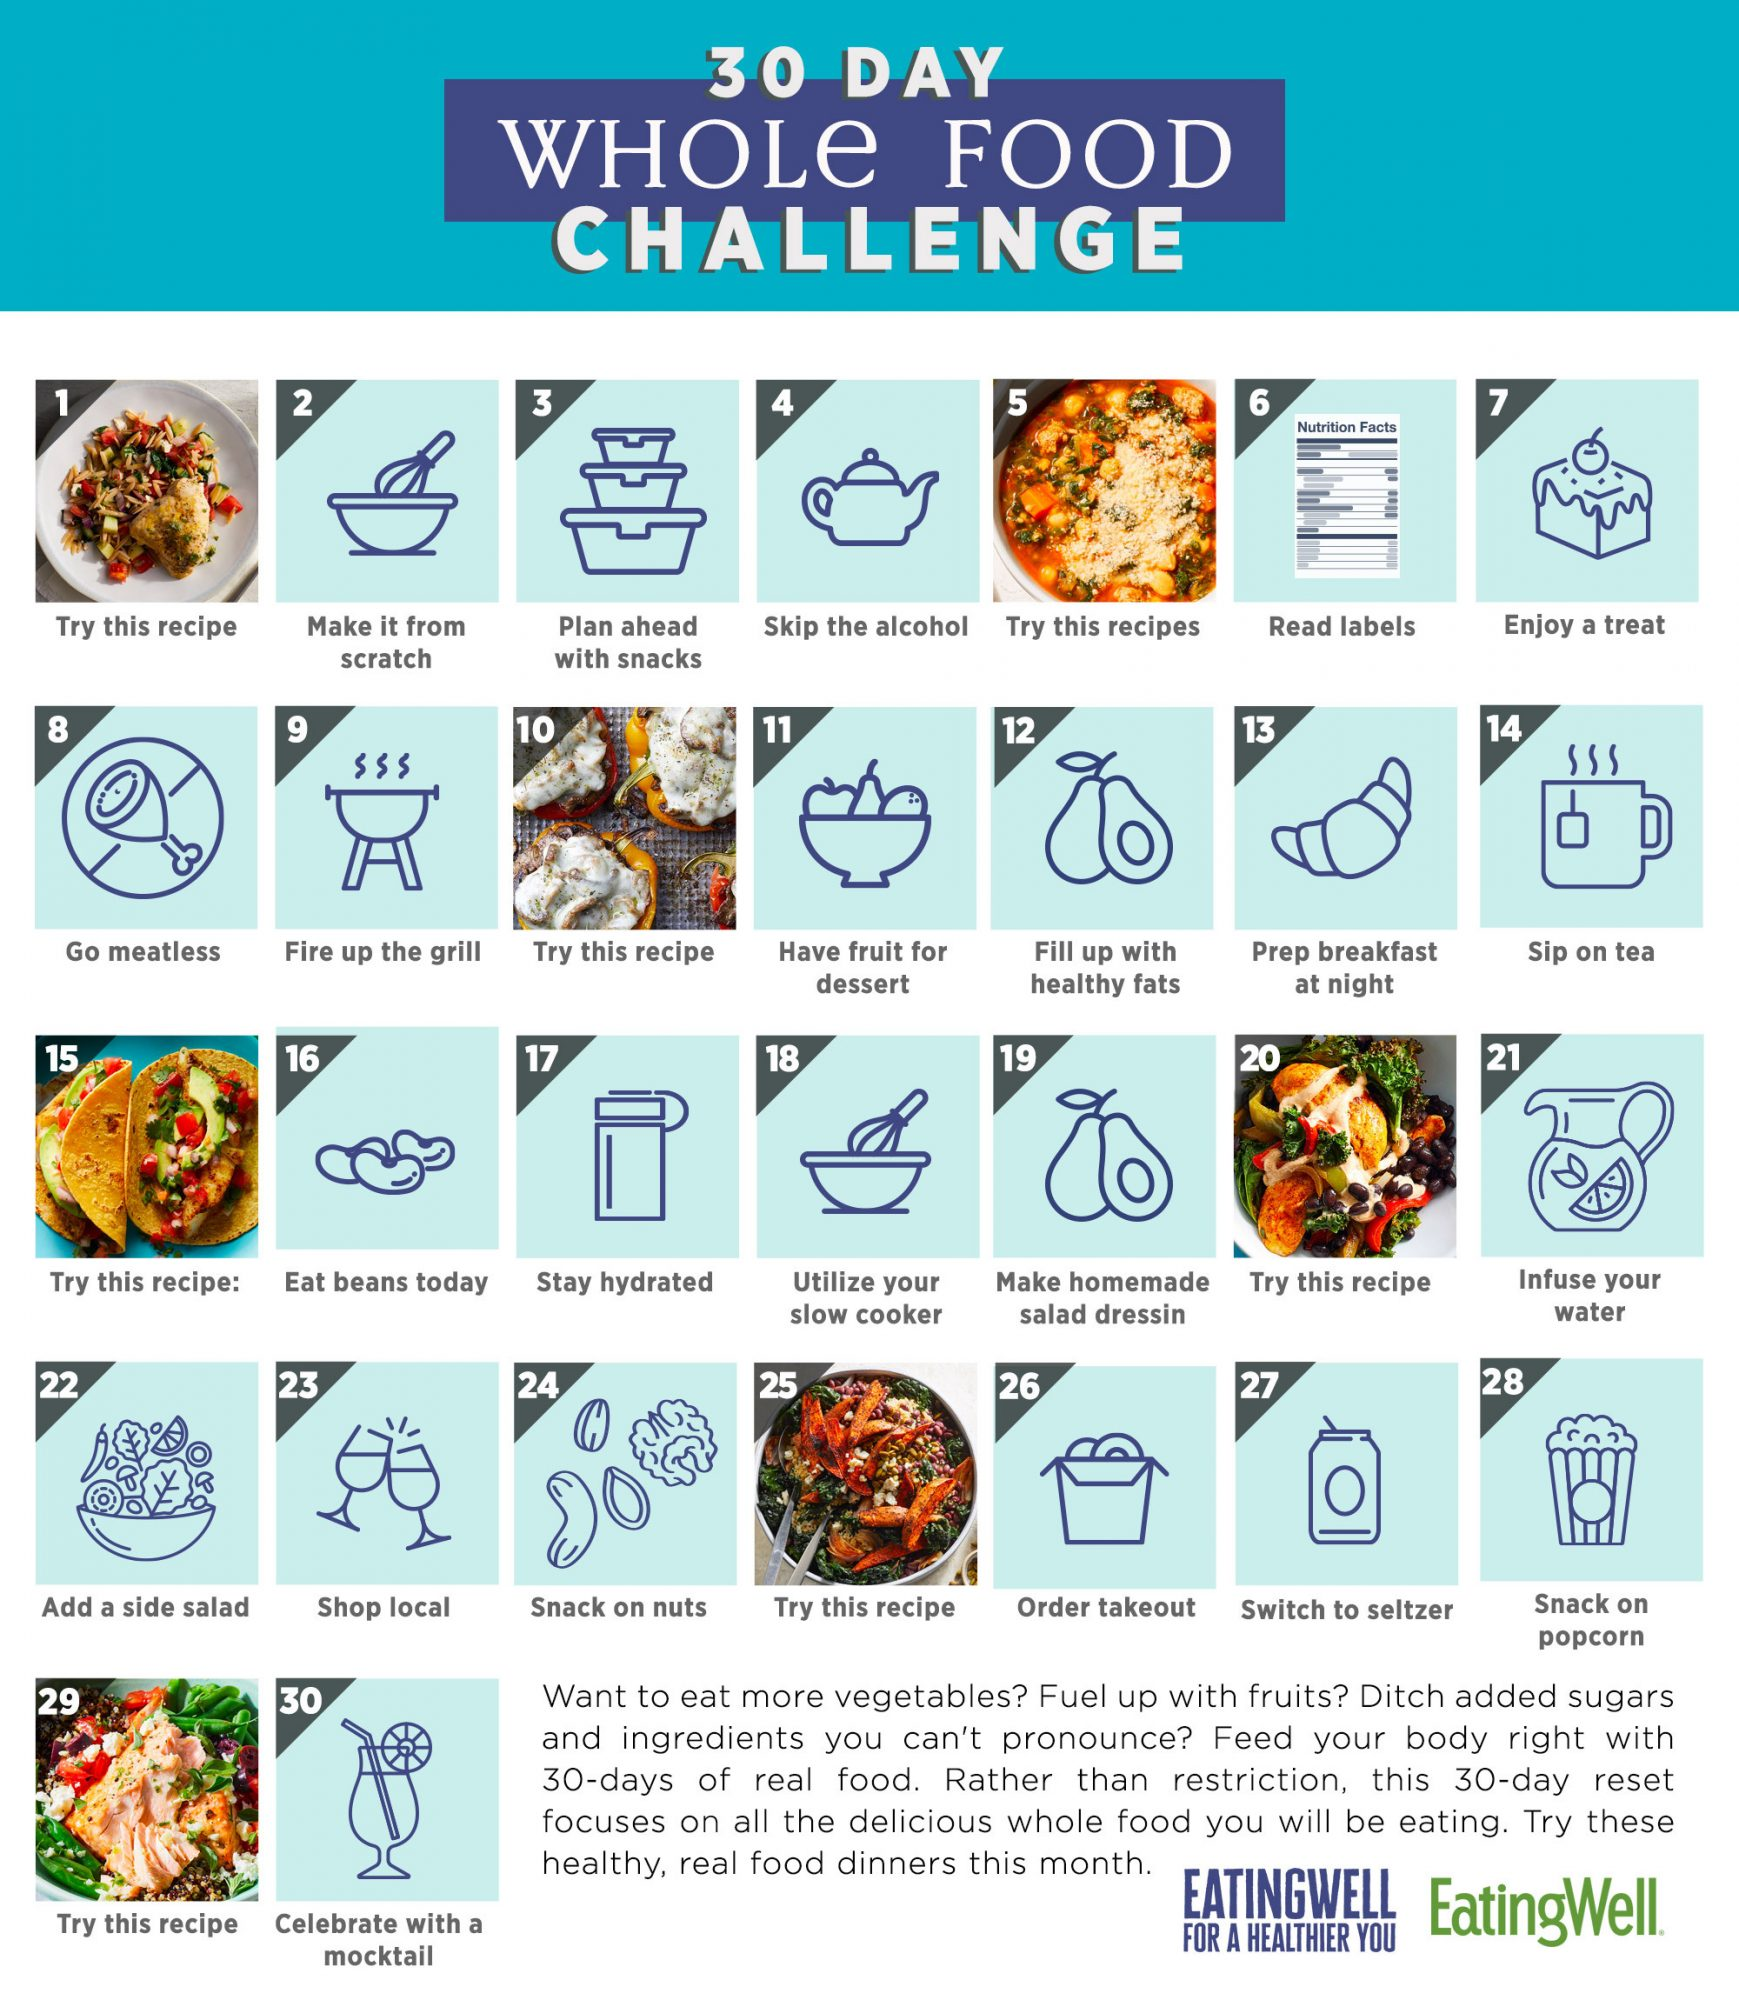 30 day whole food challenge calendar 2021